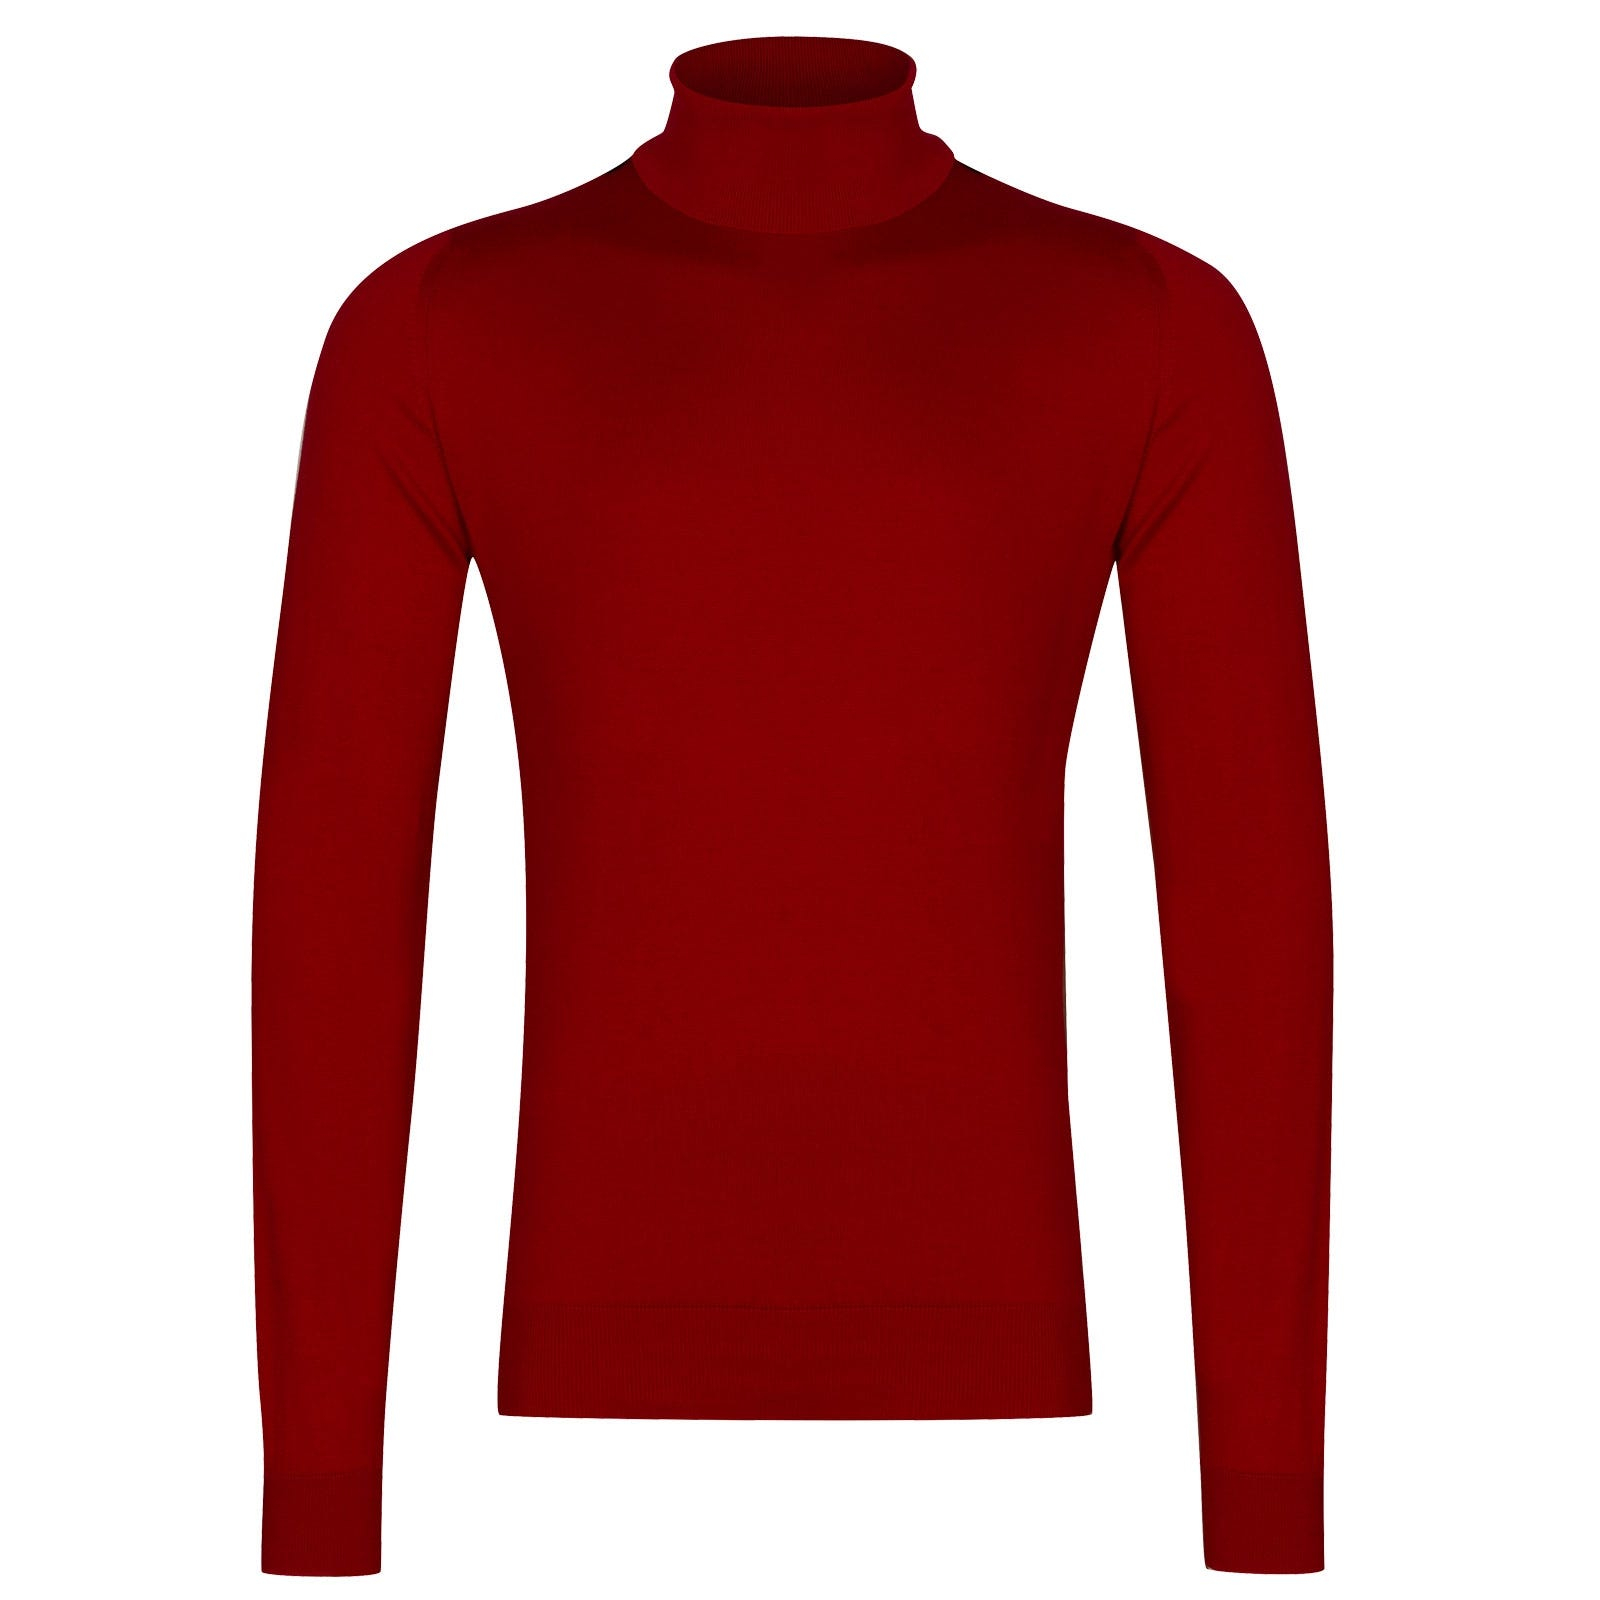 John Smedley Hawley Sea Island Cotton Pullover in Thermal Red-XL